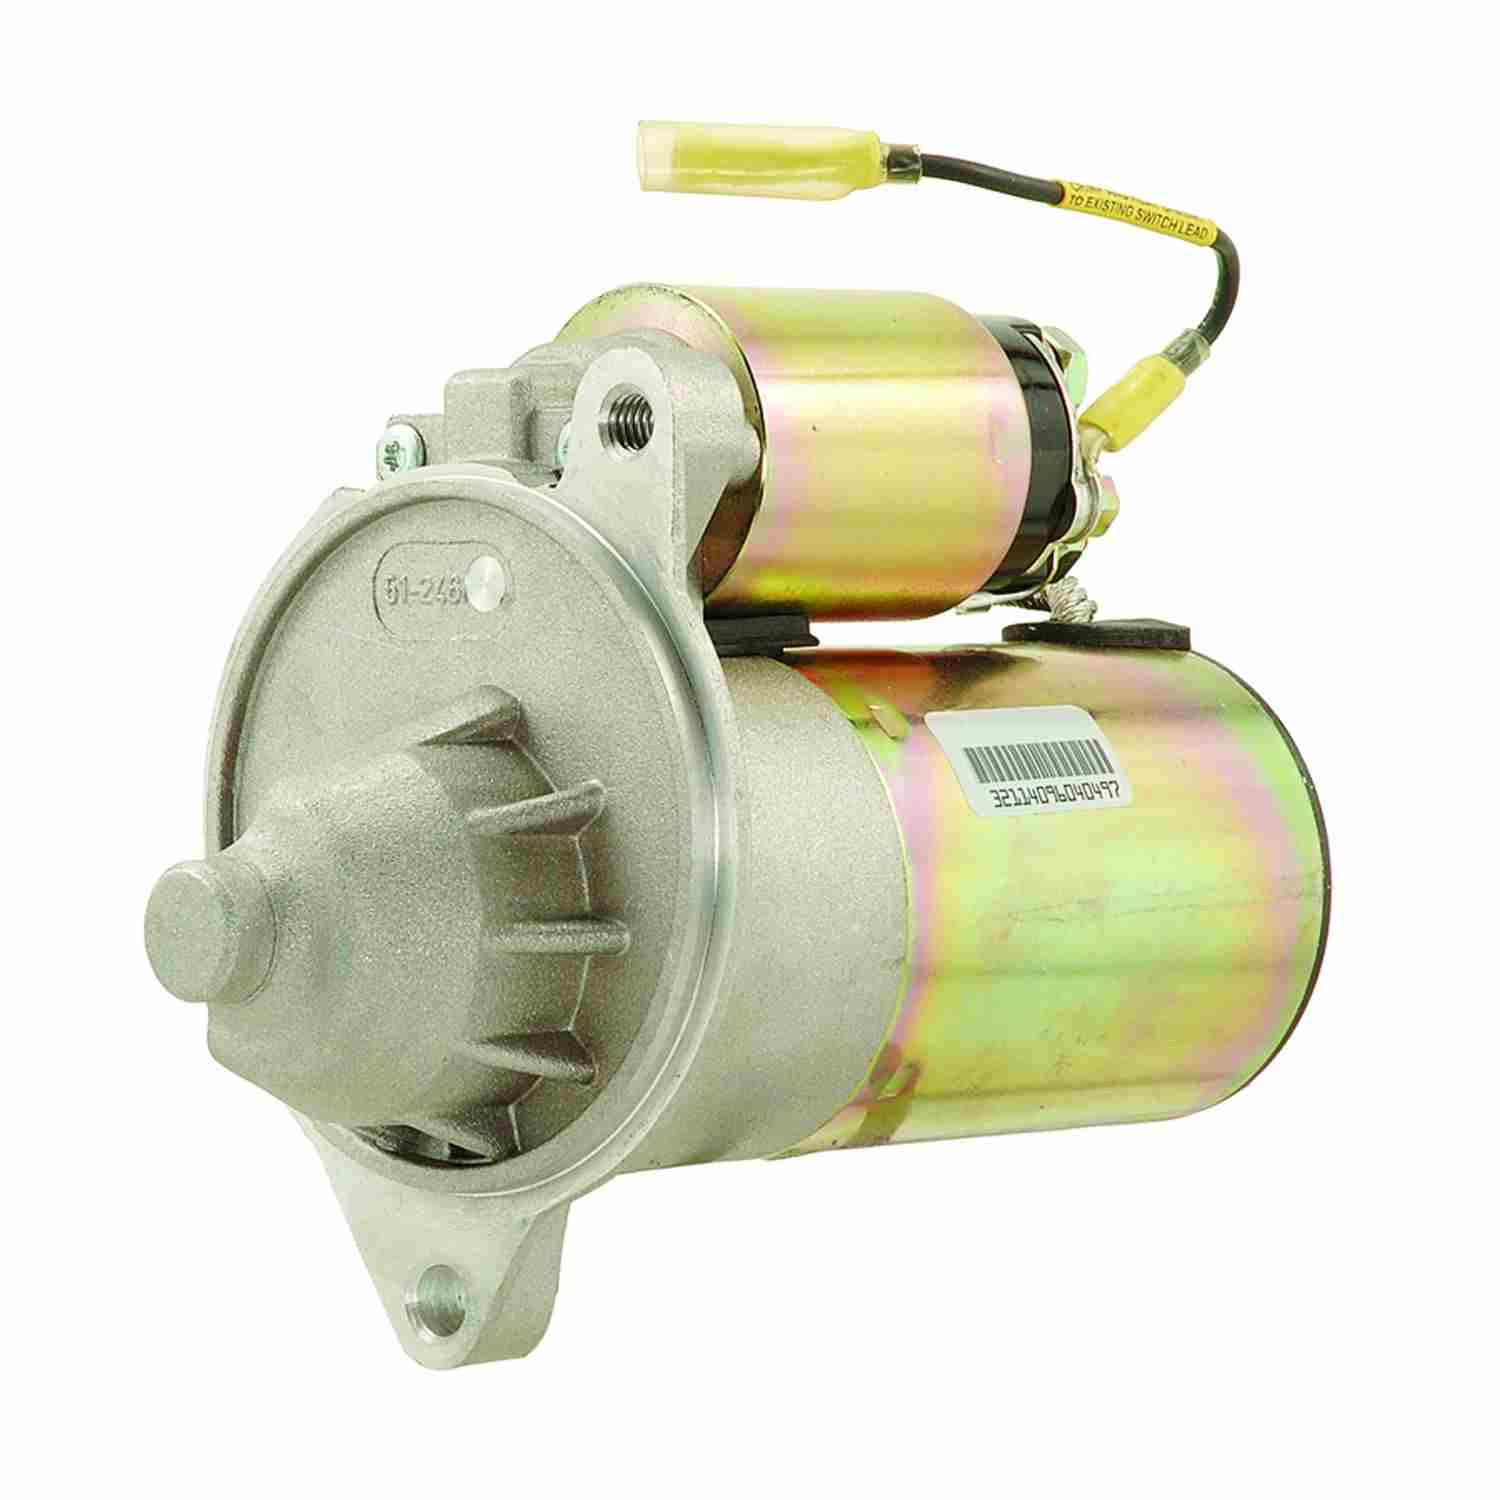 ACDELCO GOLD/PROFESSIONAL - Starter Motor - DCC 337-1042